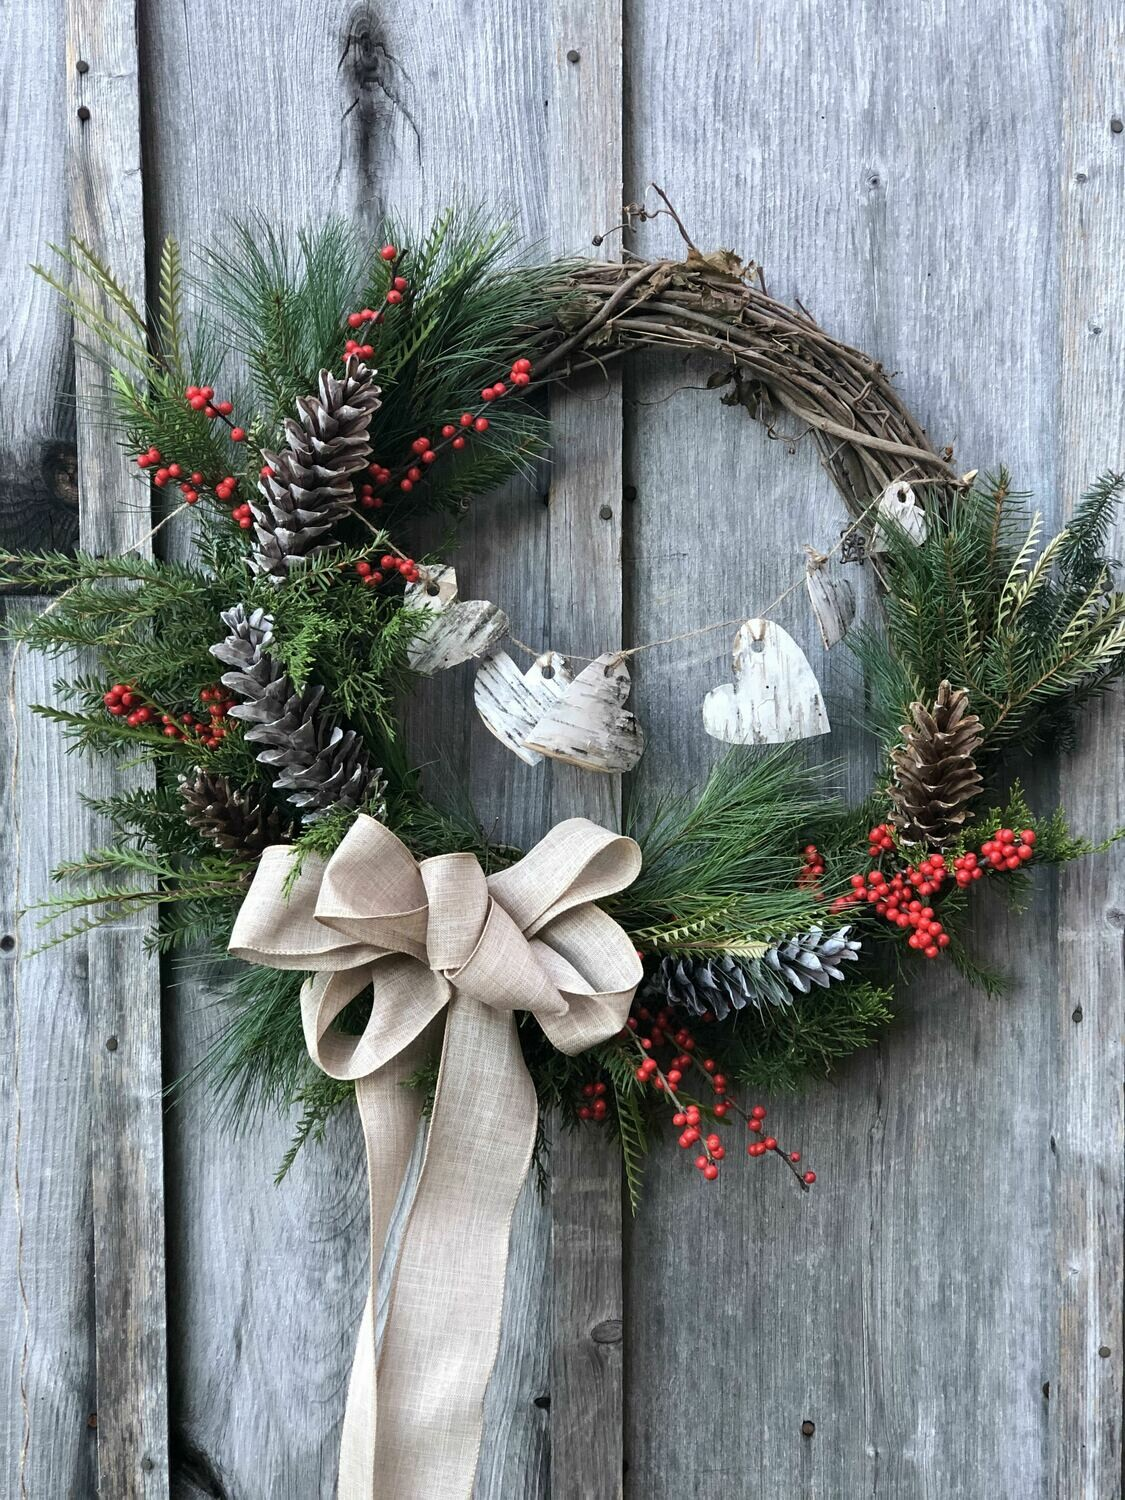 Open Air Winter Wreath Workshop, Monday, Nov. 30, 6 p.m.